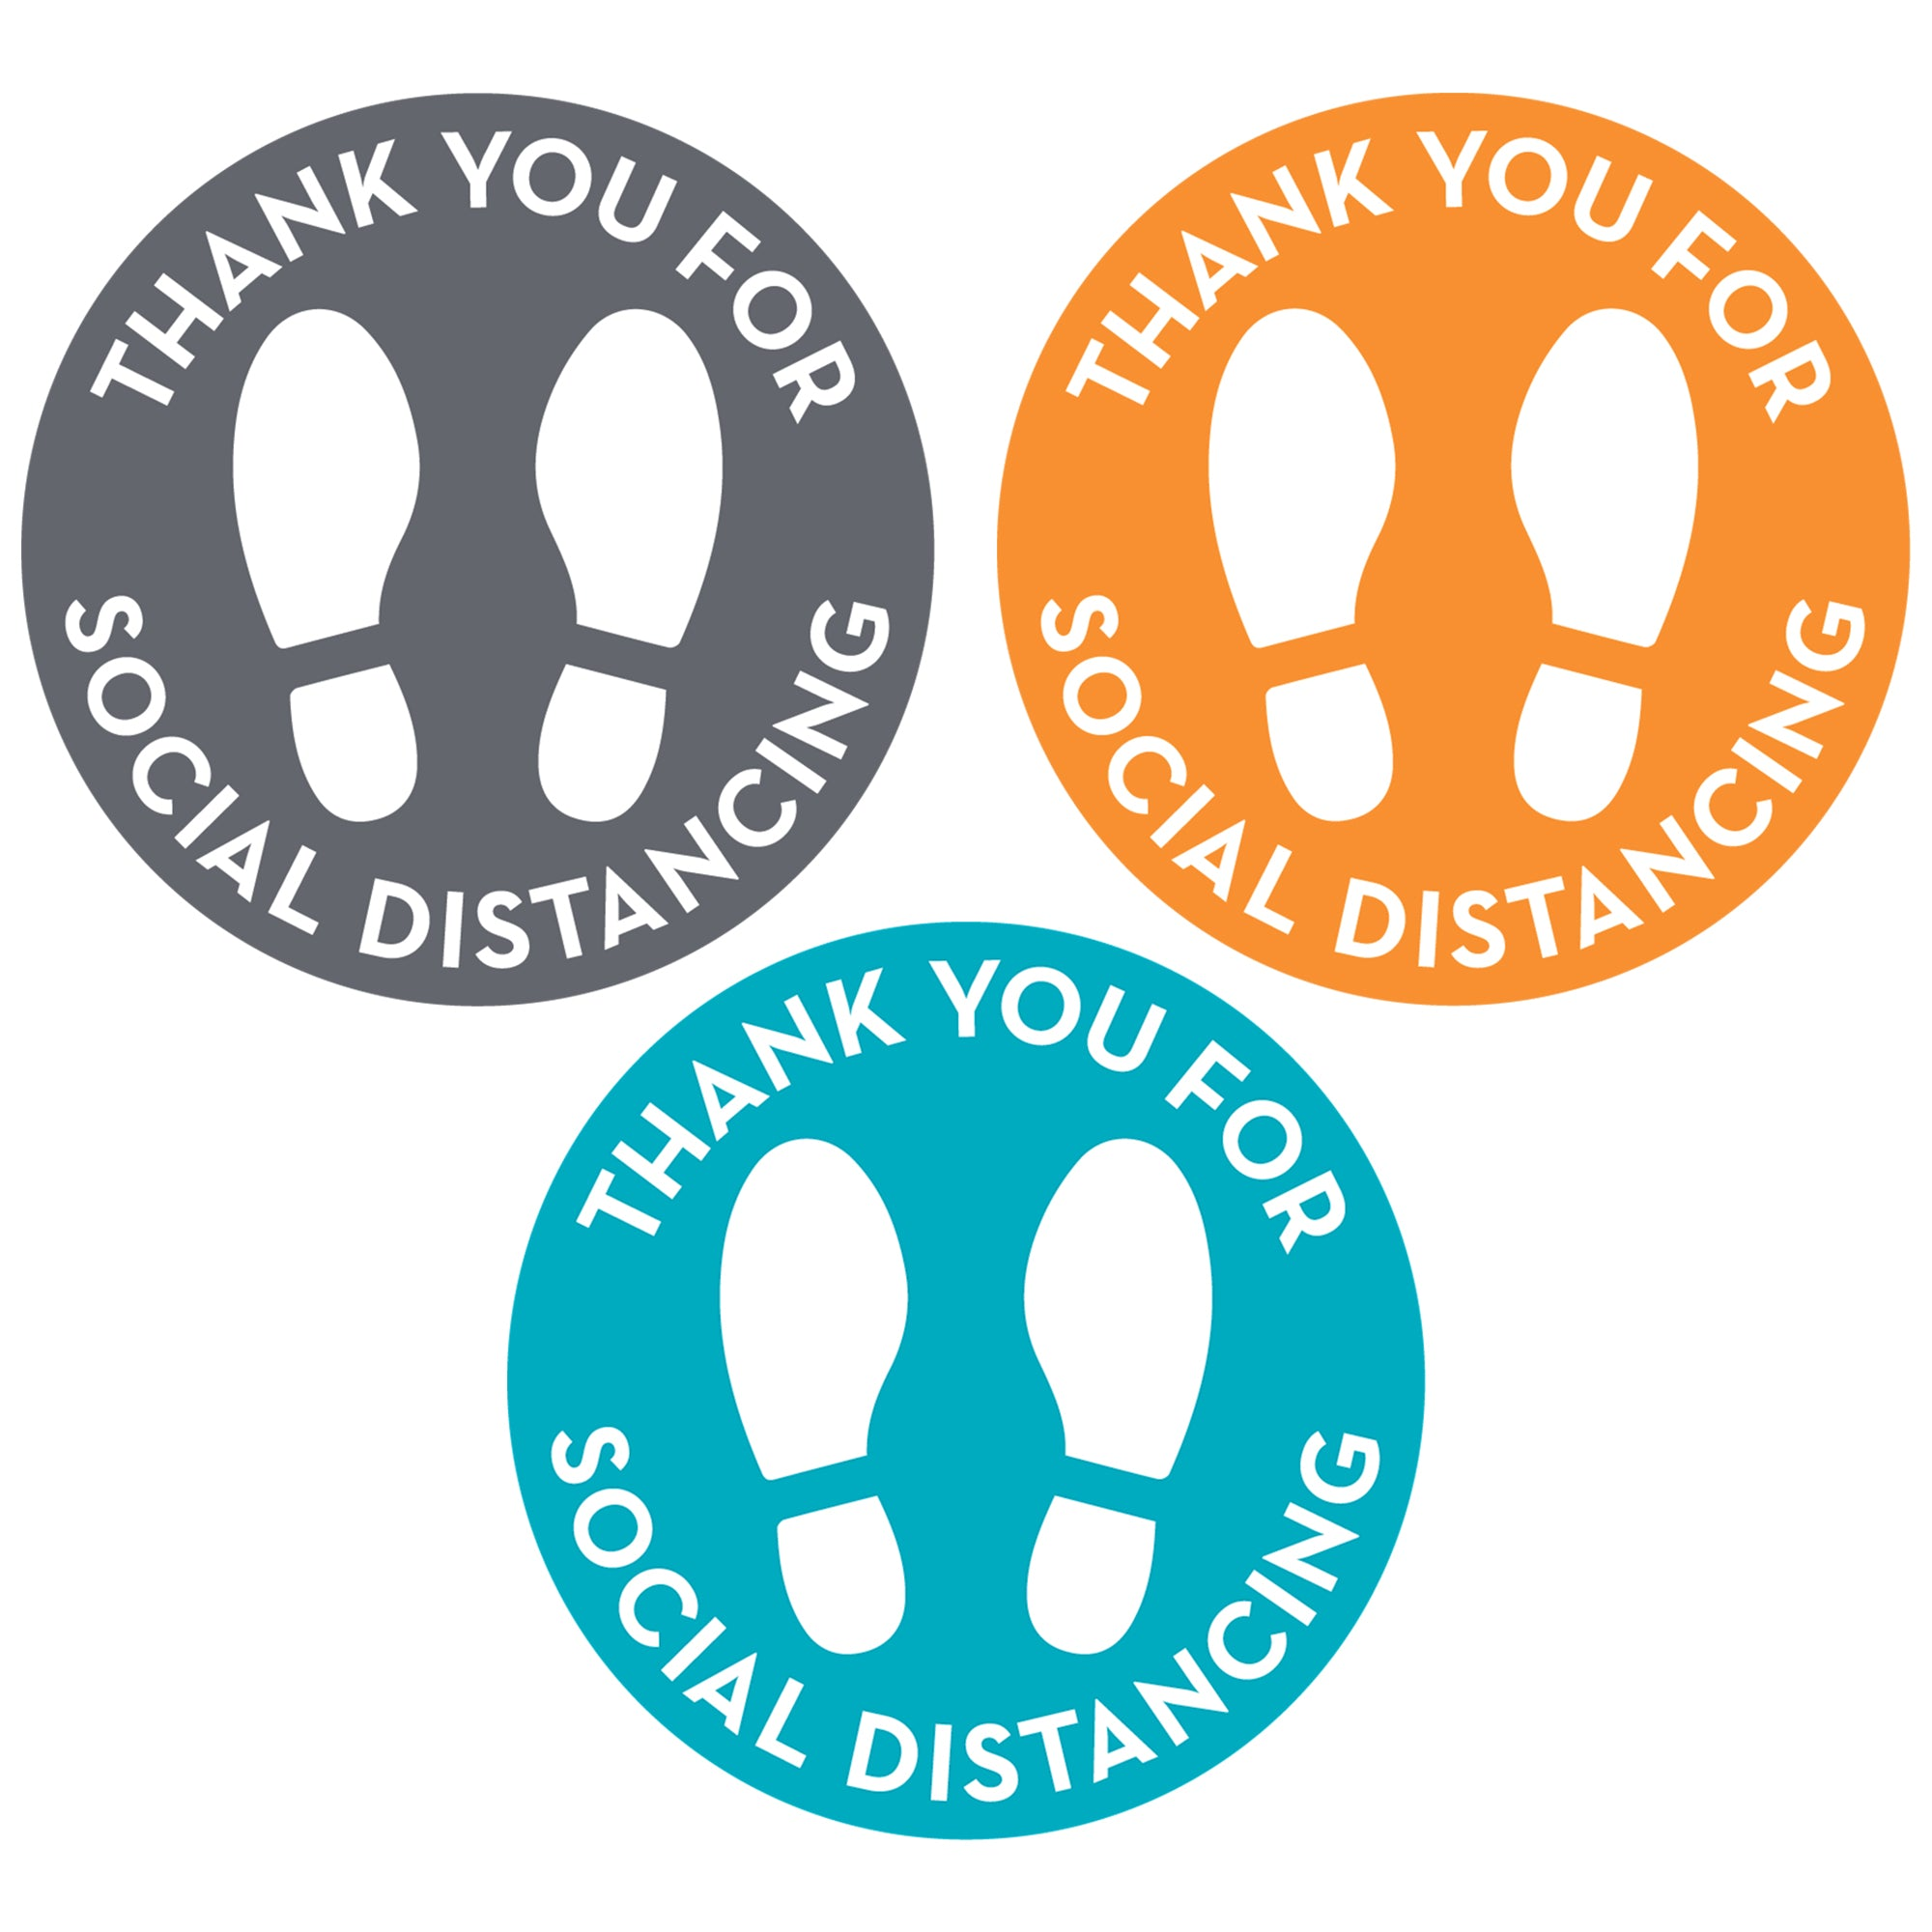 thank-you-for-social-distancing-footprints-floor-decals-in-three-colors